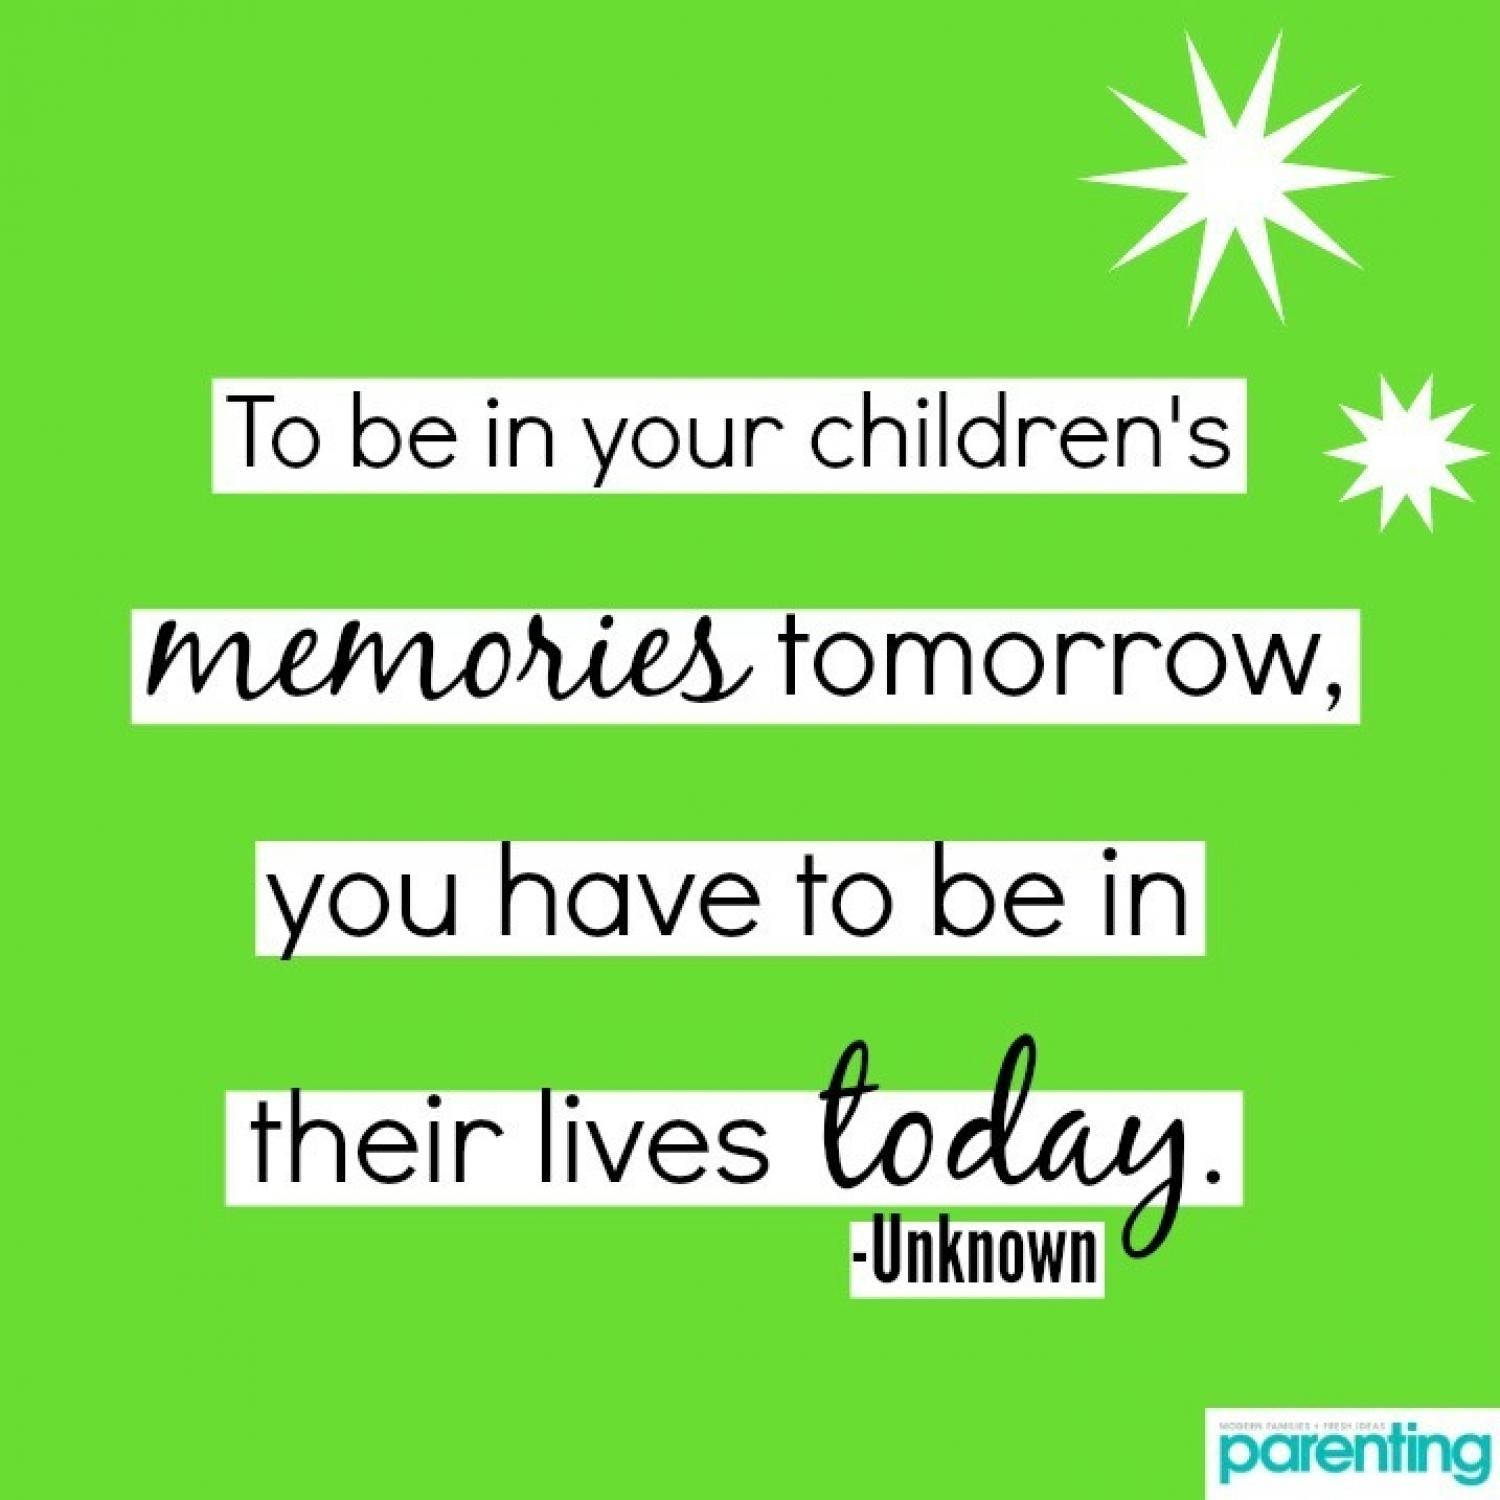 Quotes About Parenting 17 Amazing Parenting Quotes That Will Make You A Better Parent